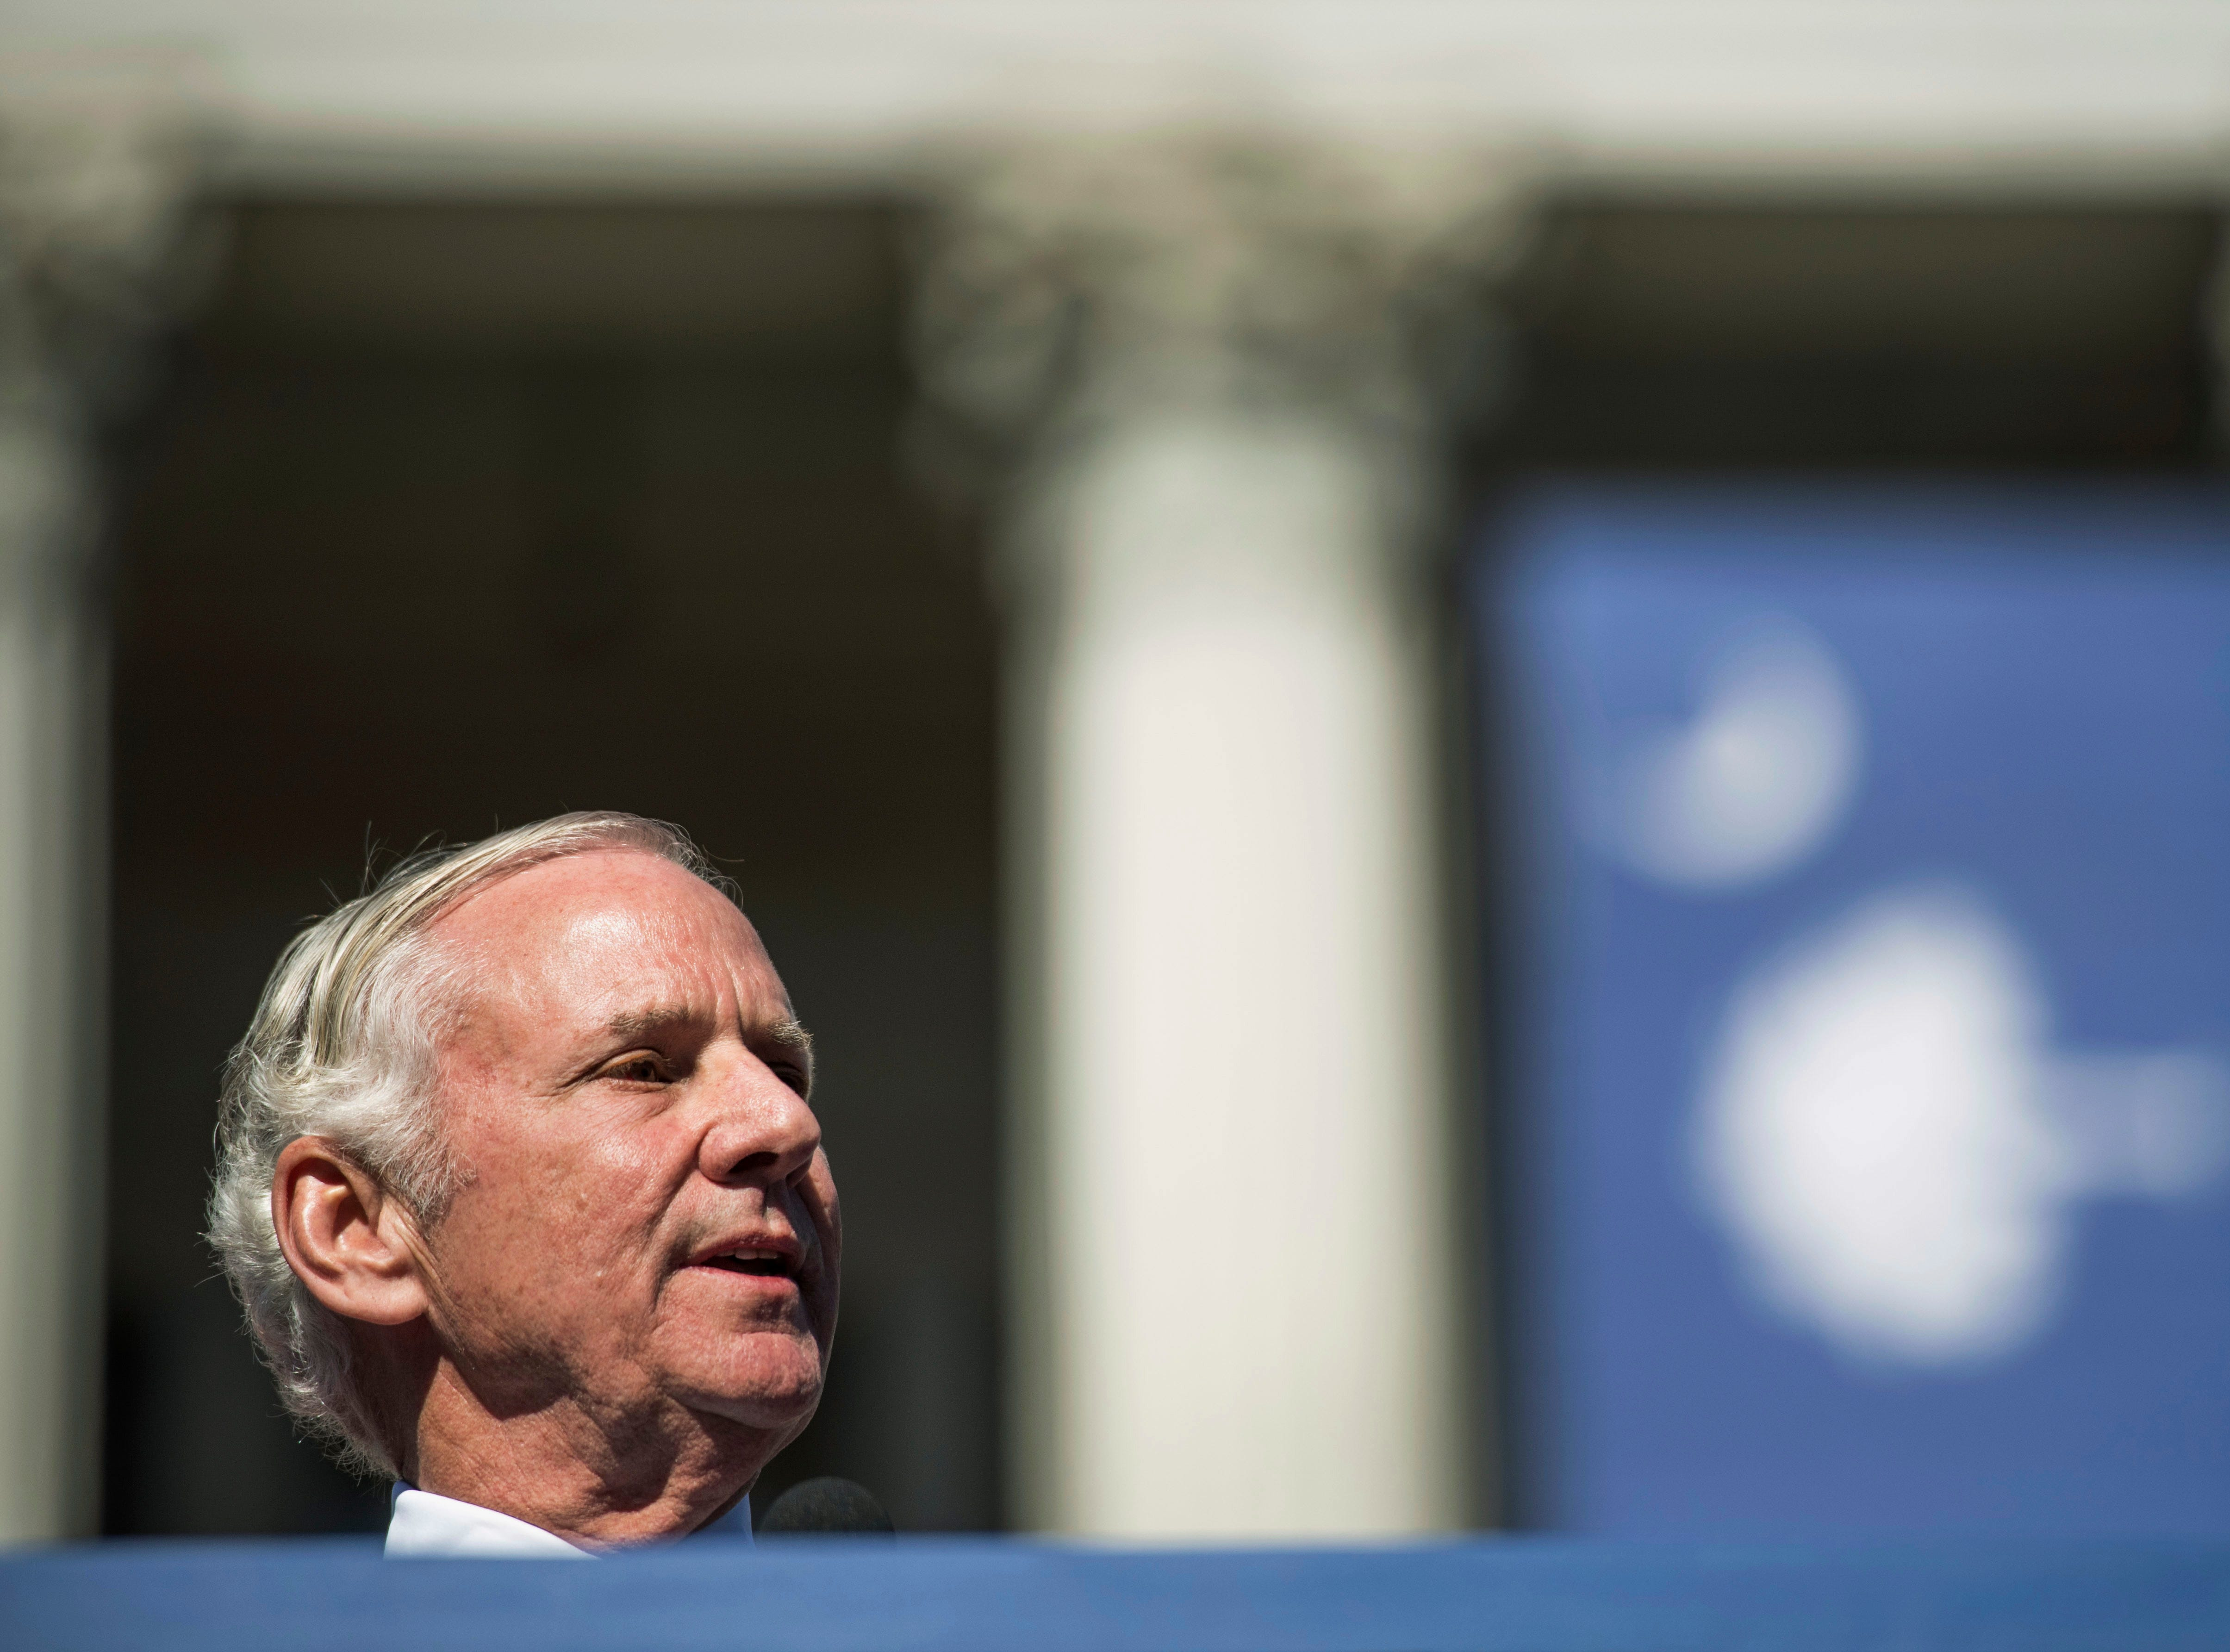 South Carolina Gov. Henry McMaster addresses the crowd after being sworn in for his first full term at the South Carolina Statehouse, Wednesday, Jan. 9, 2019, in Columbia, S.C. McMaster defeated Democratic state Rep. James Smith in the Nov. 6 election. (AP Photo/Sean Rayford)